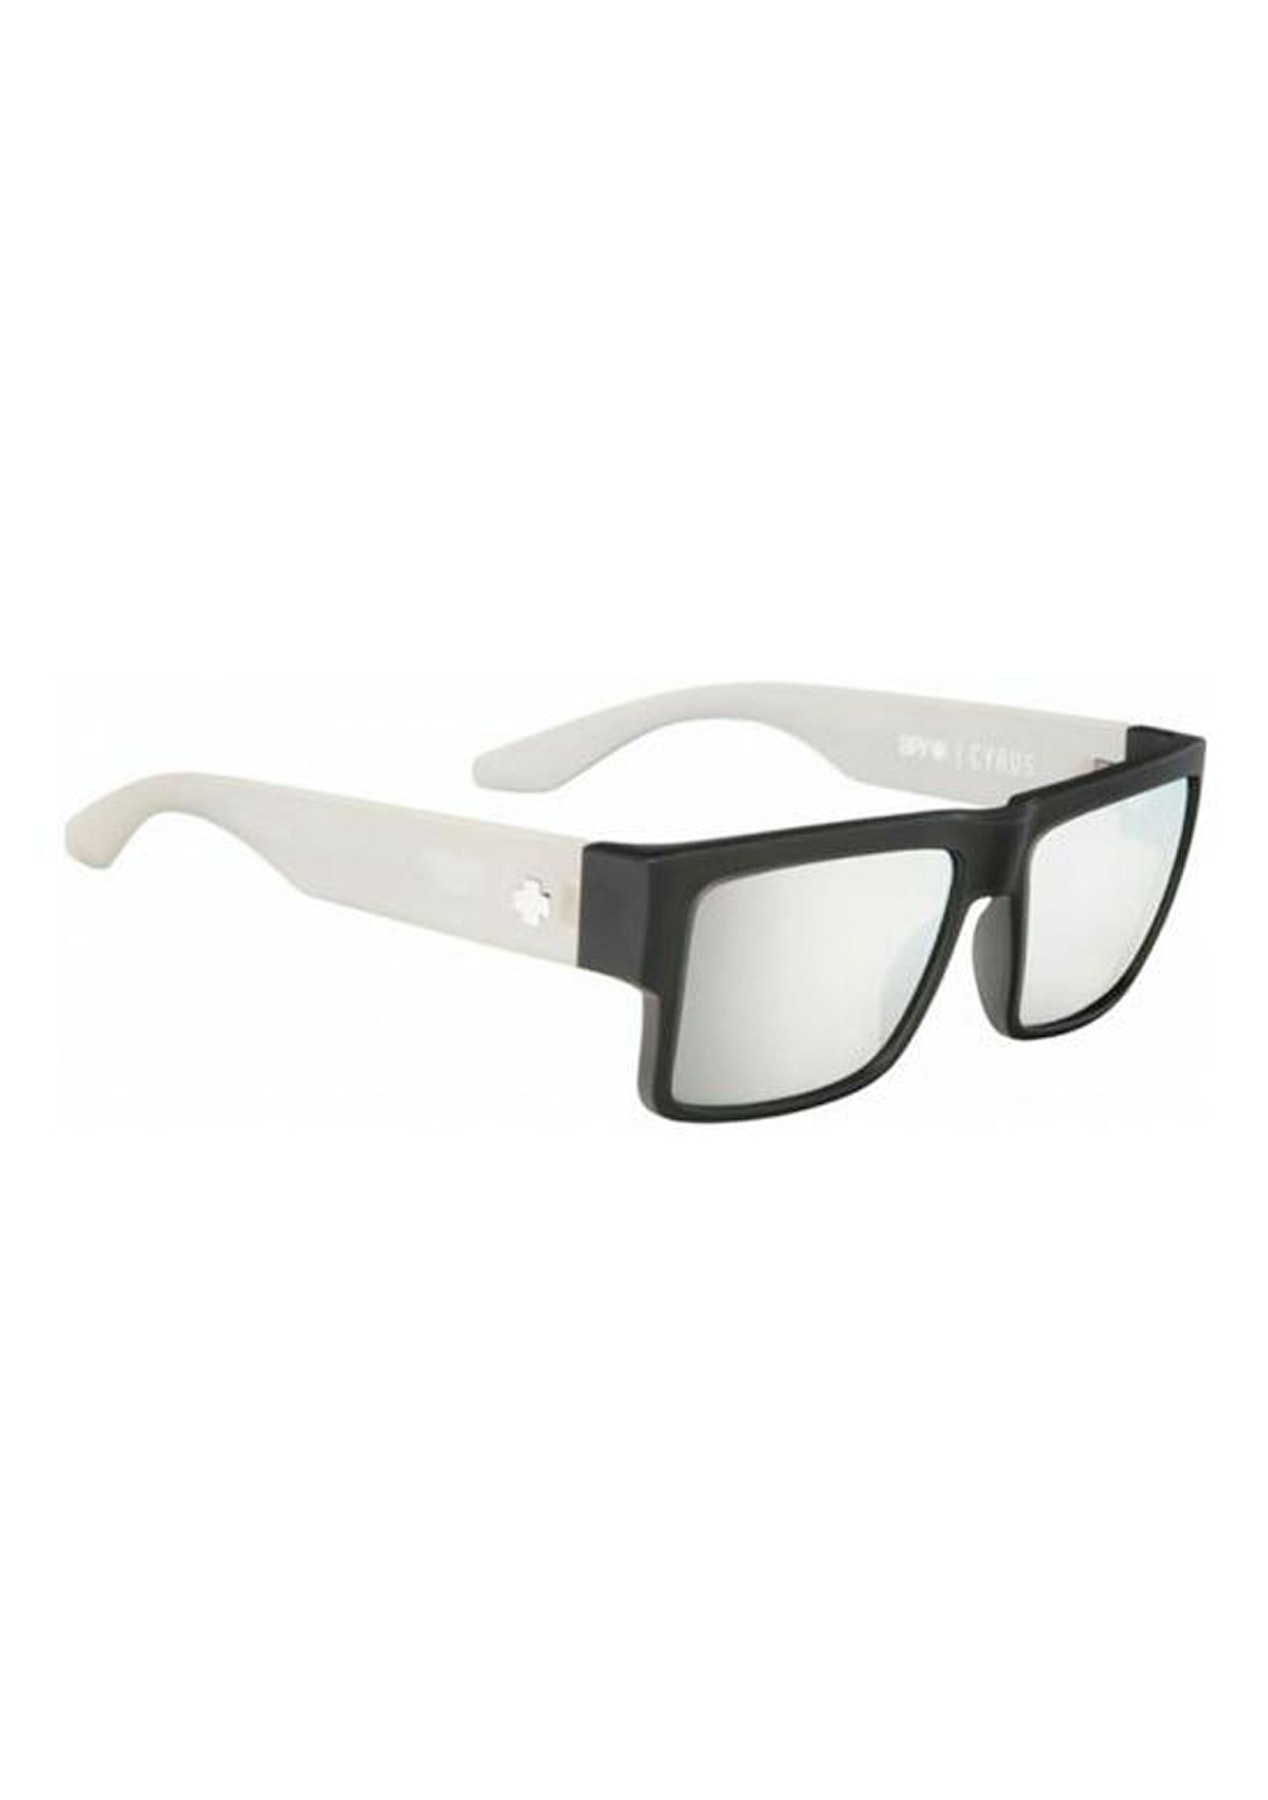 d169b1ccc0 SPY Cyrus Sunglasses - Galaxy Chrome - Happy Grey Green w Silver Mirror - Quay  Eyewear   More - Onceit